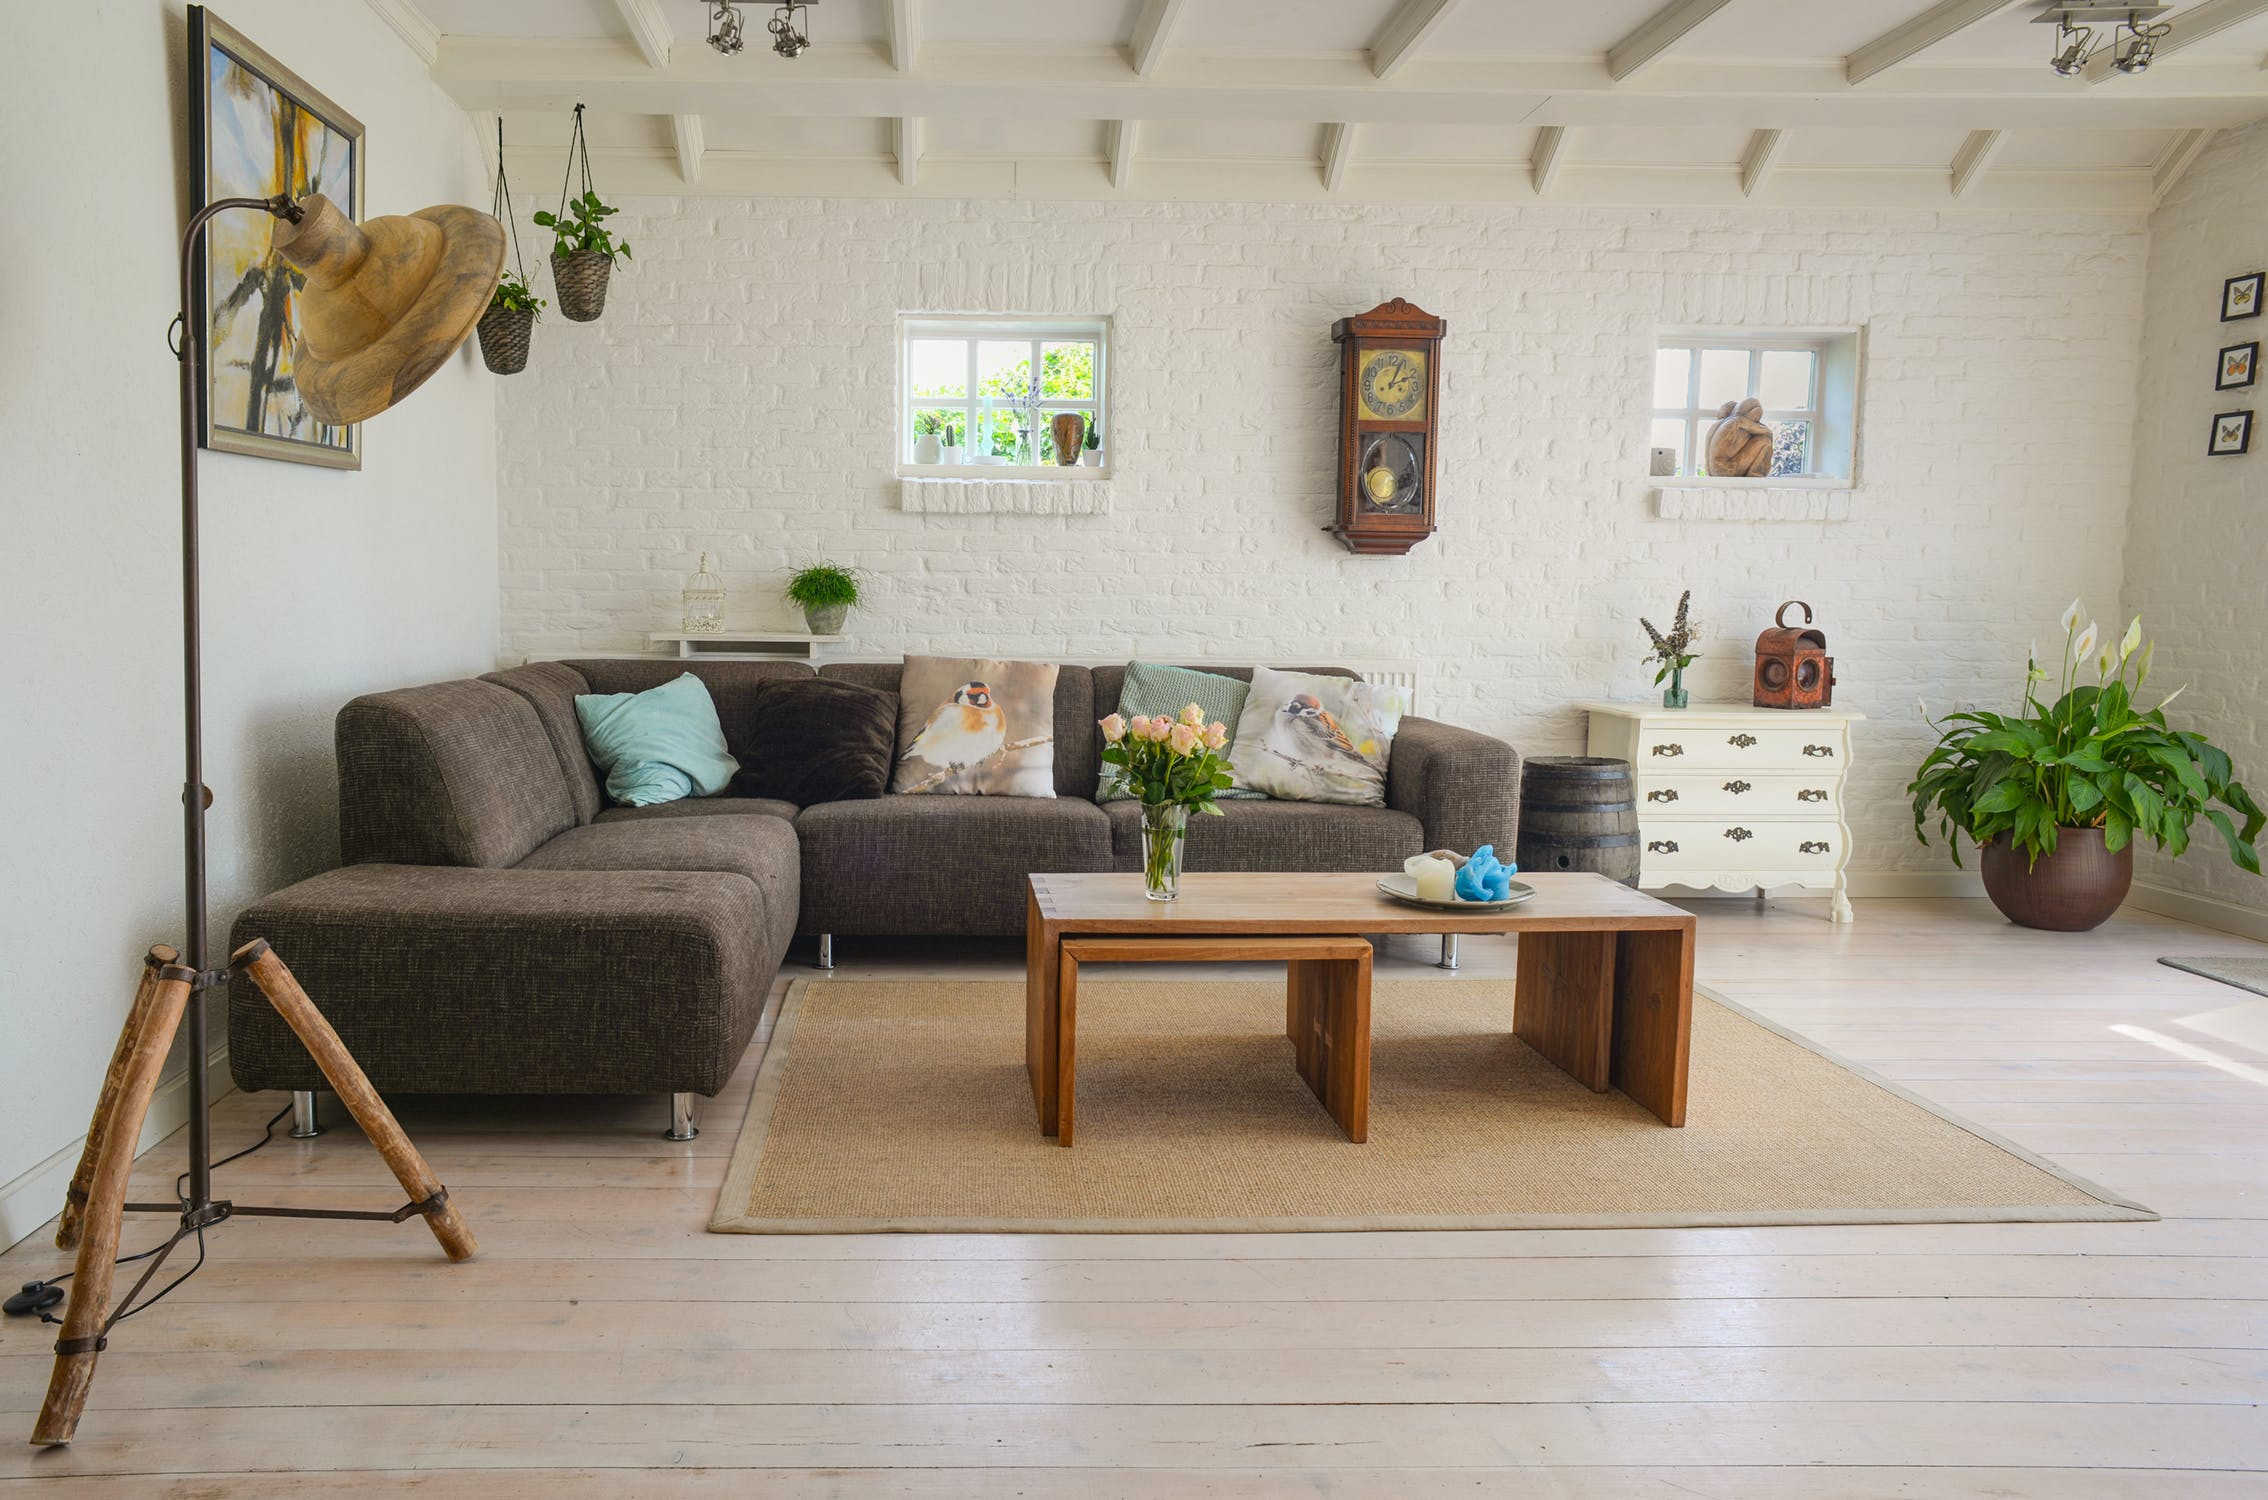 Klassische Sofas You Can Assemble We Will Assemble And Install Your Furniture Closet Concepts